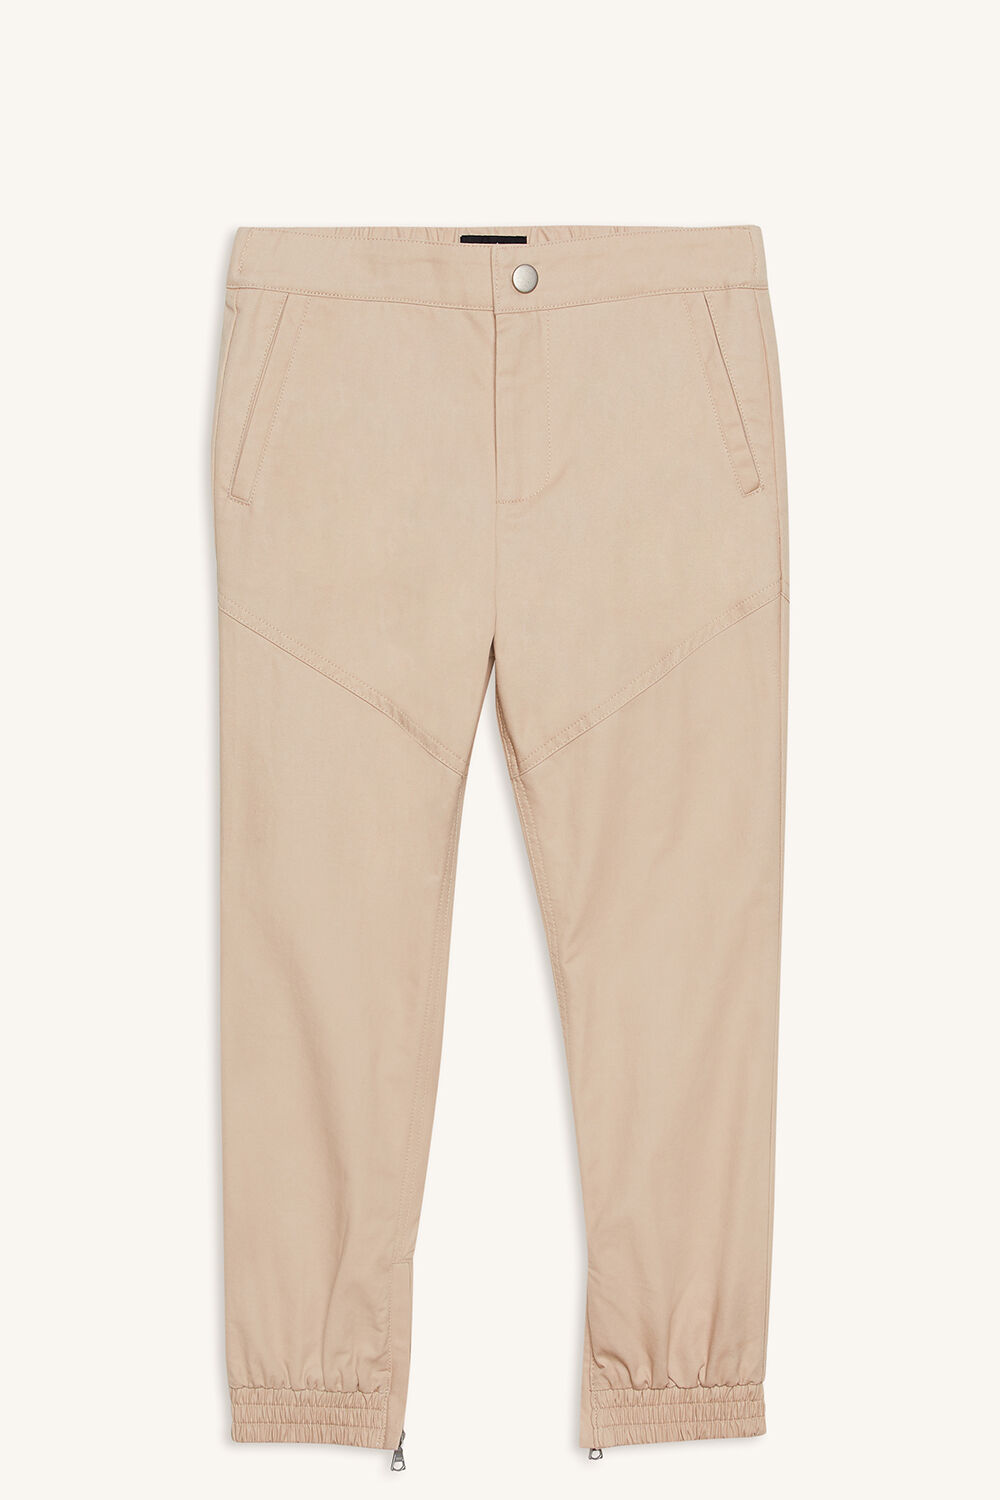 CHINO JOGGER PANT in colour FOG